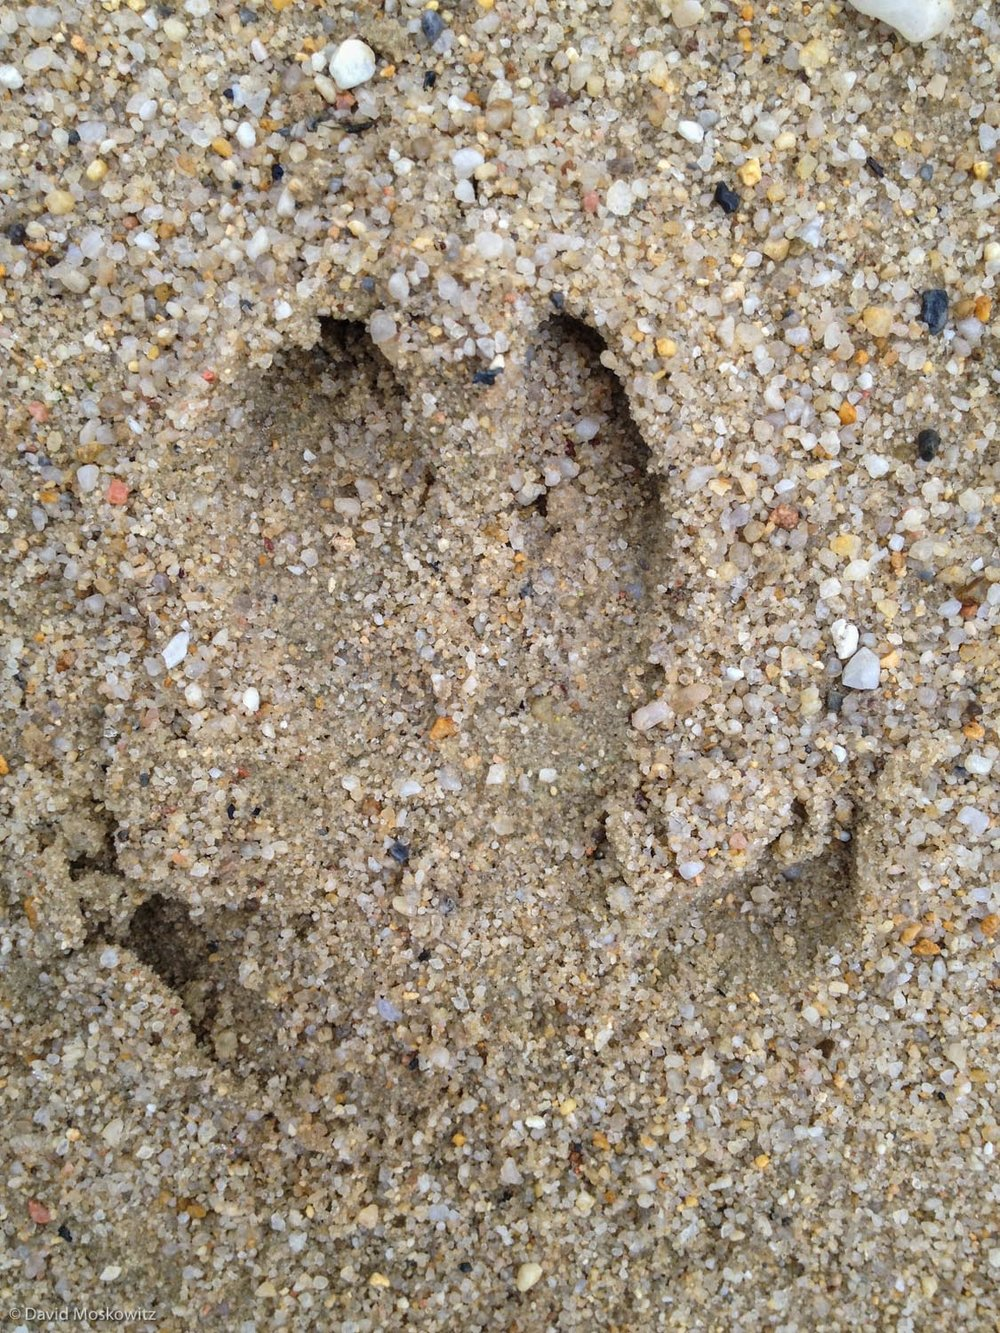 Footprint of a wild boar (Sus scrofa). Eastern Germany.